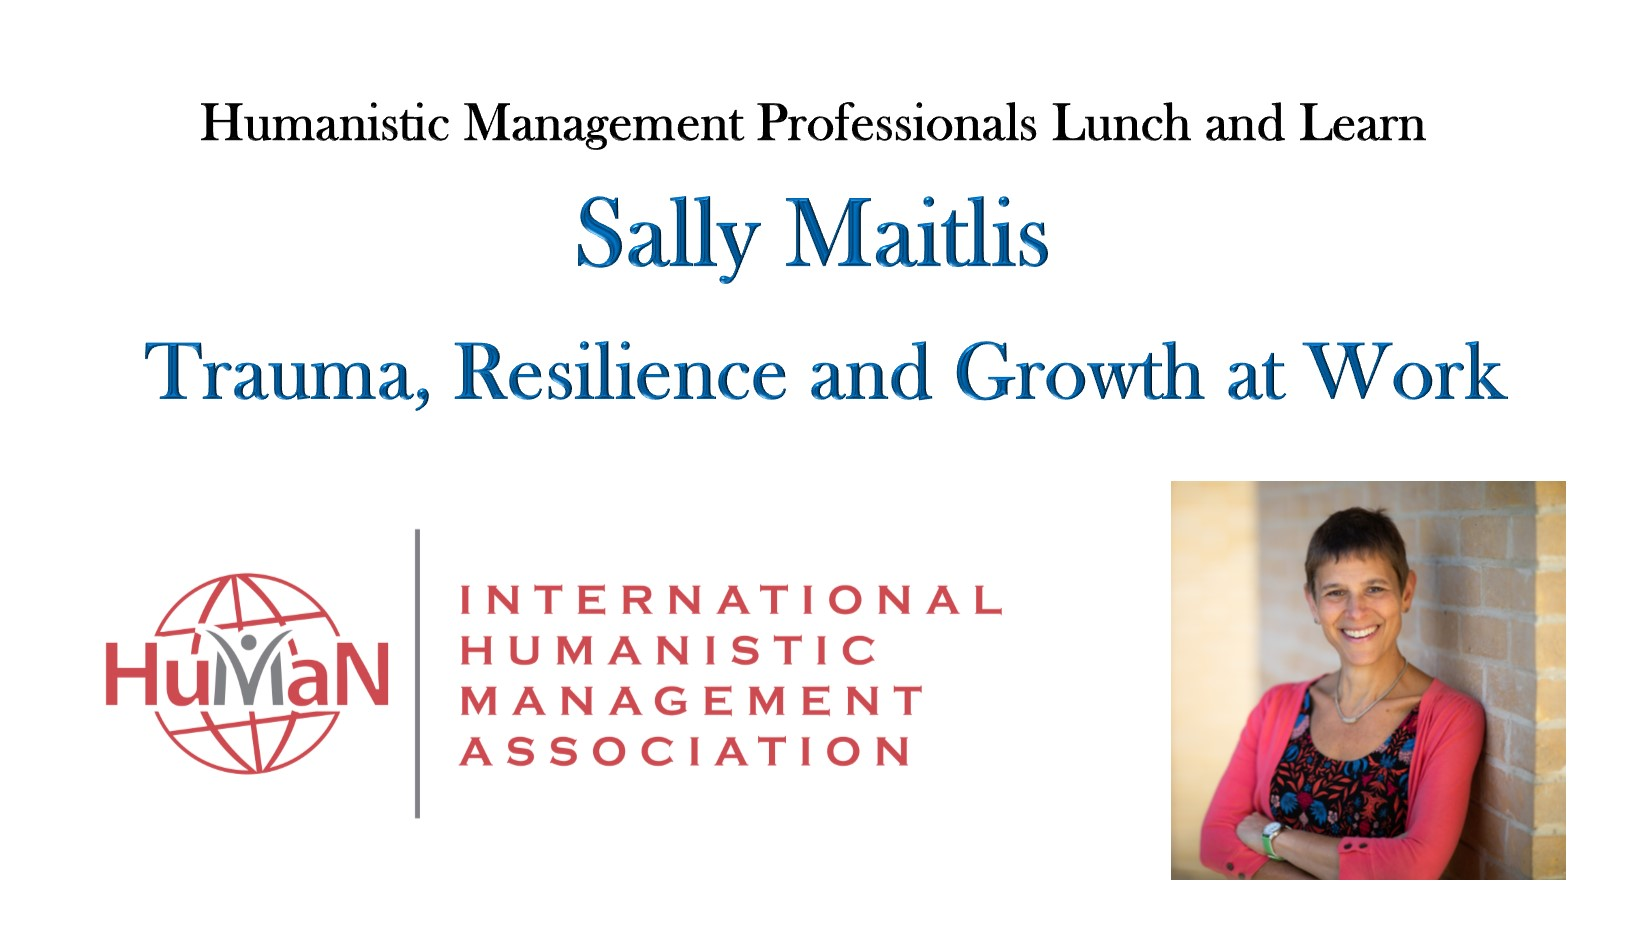 Trauma Resilience & Growth at Work with Sally Maitlis – Humanistic Management Professionals Lunch and Learn